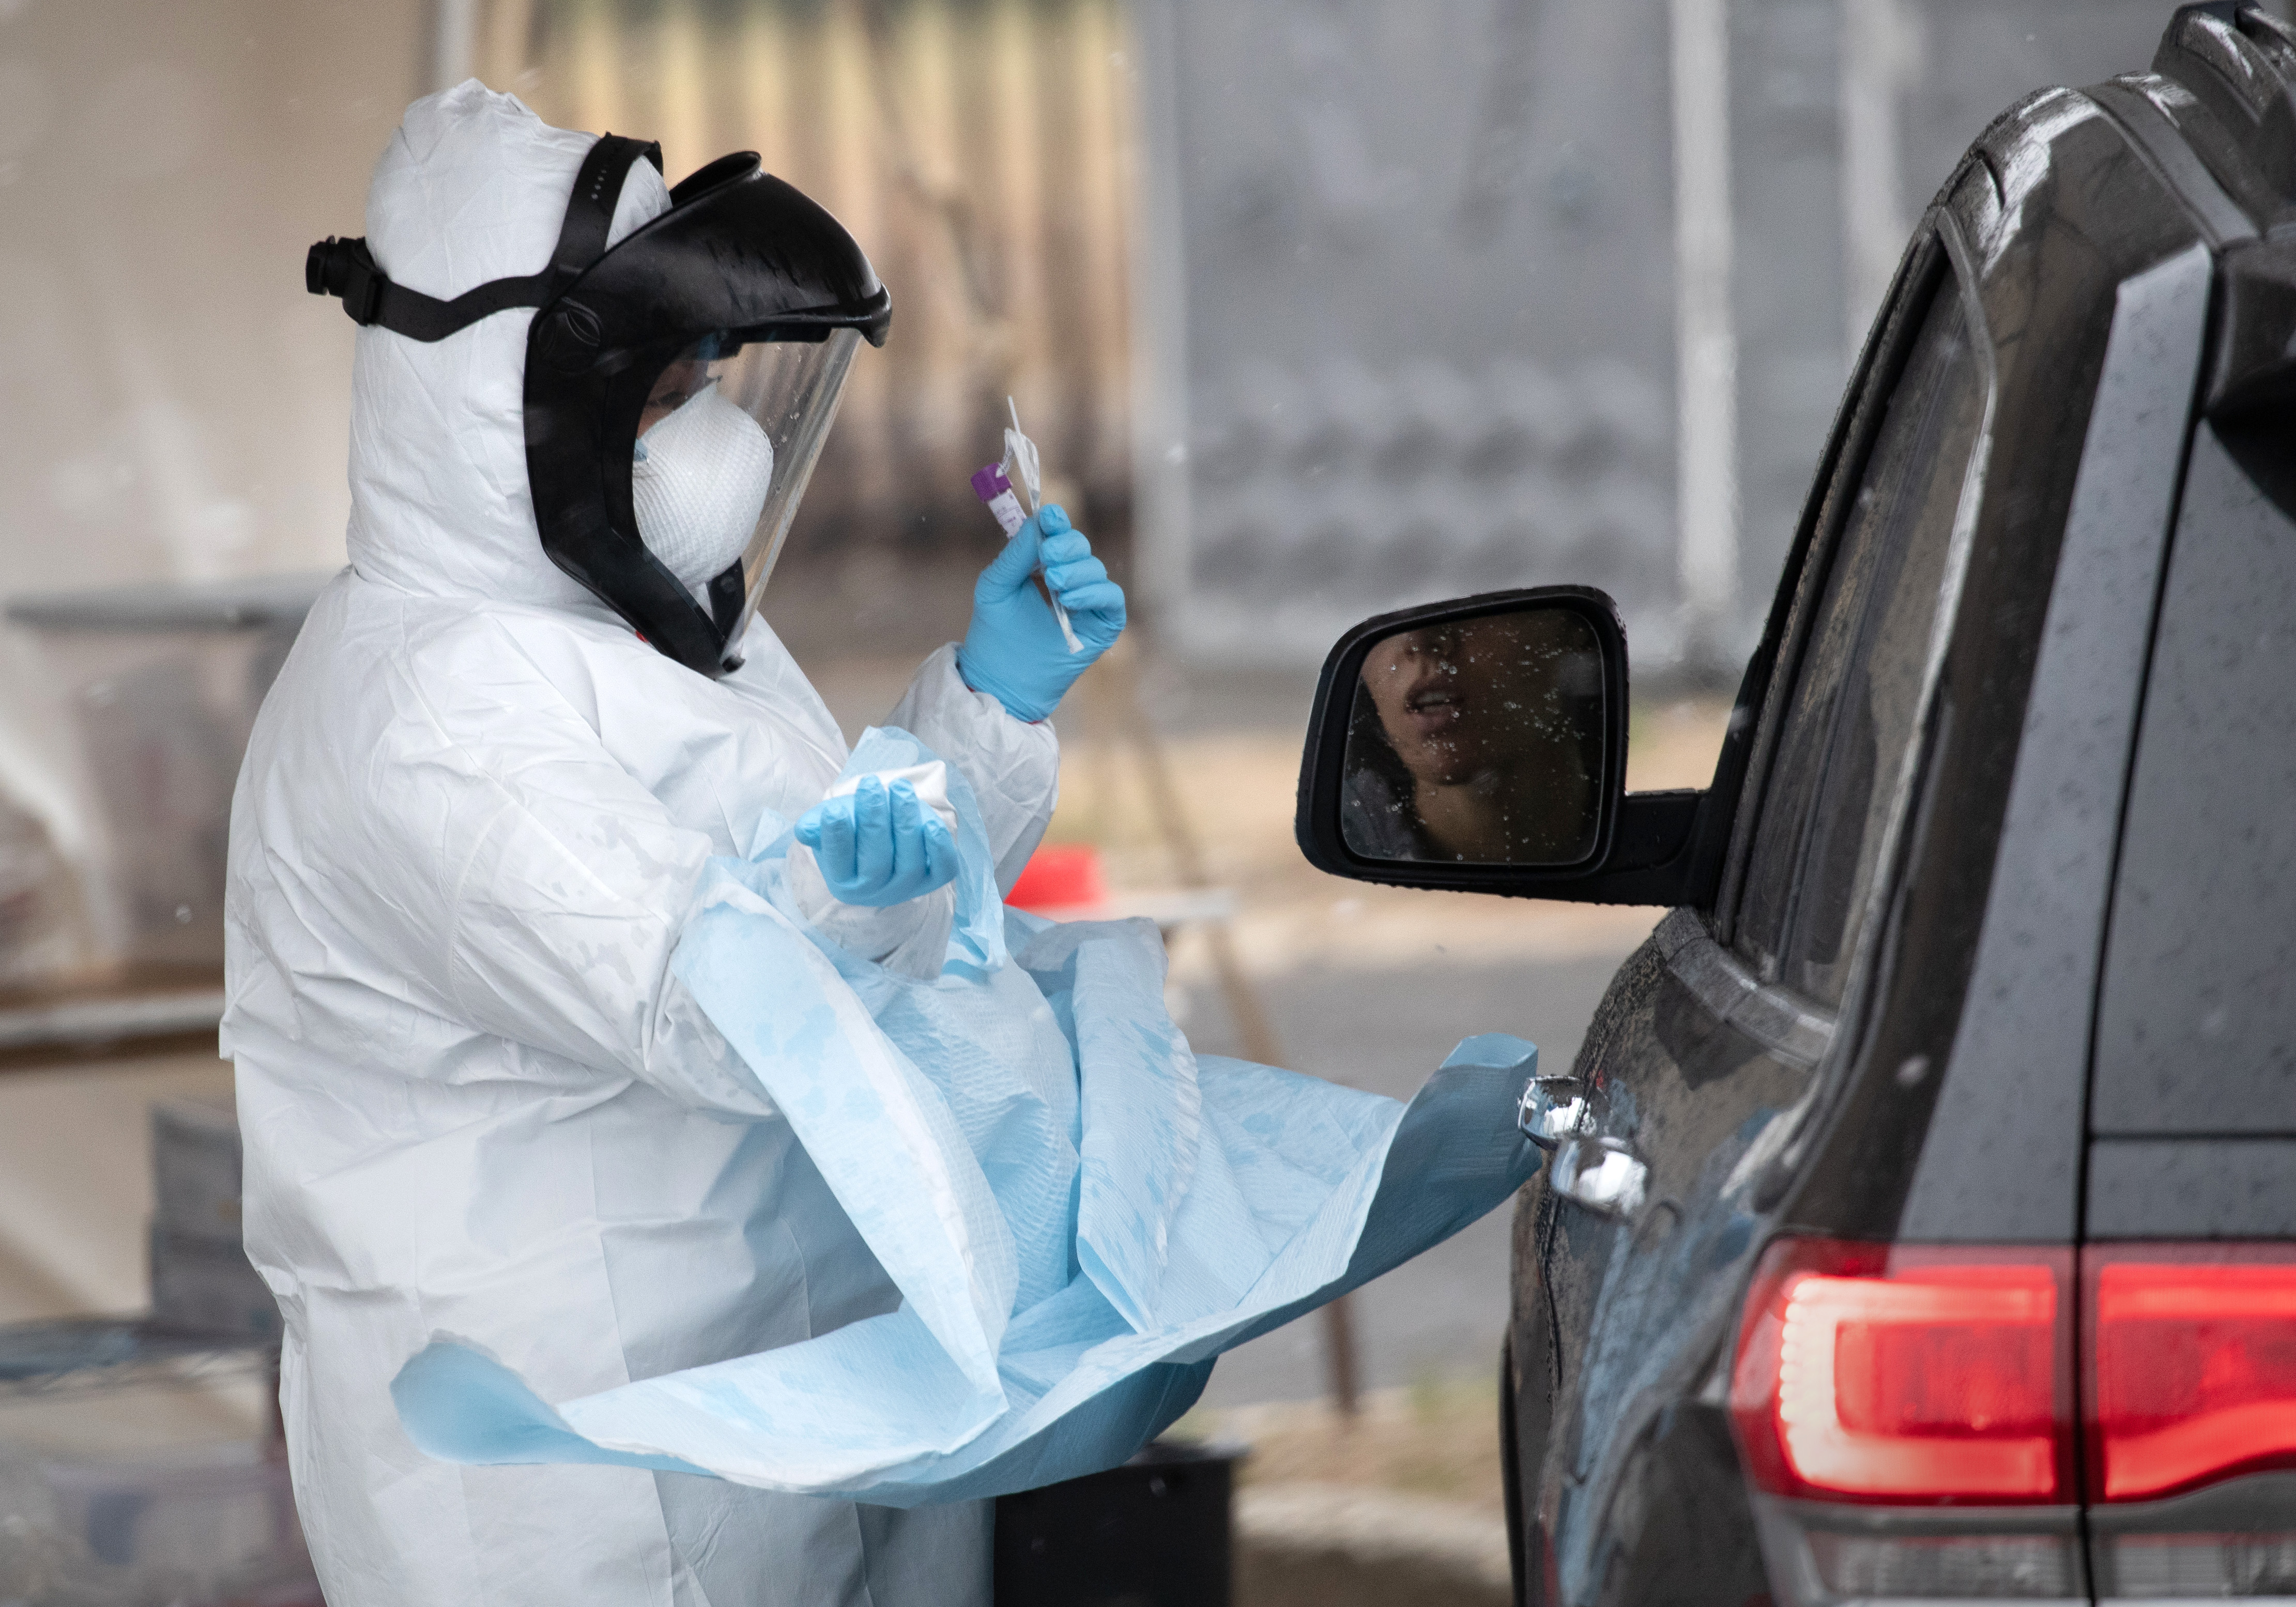 A nurse prepares to give a coronavirus swab test at a drive-thru testing station at Cummings Park on March 23, 2020 in Stamford, Connecticut